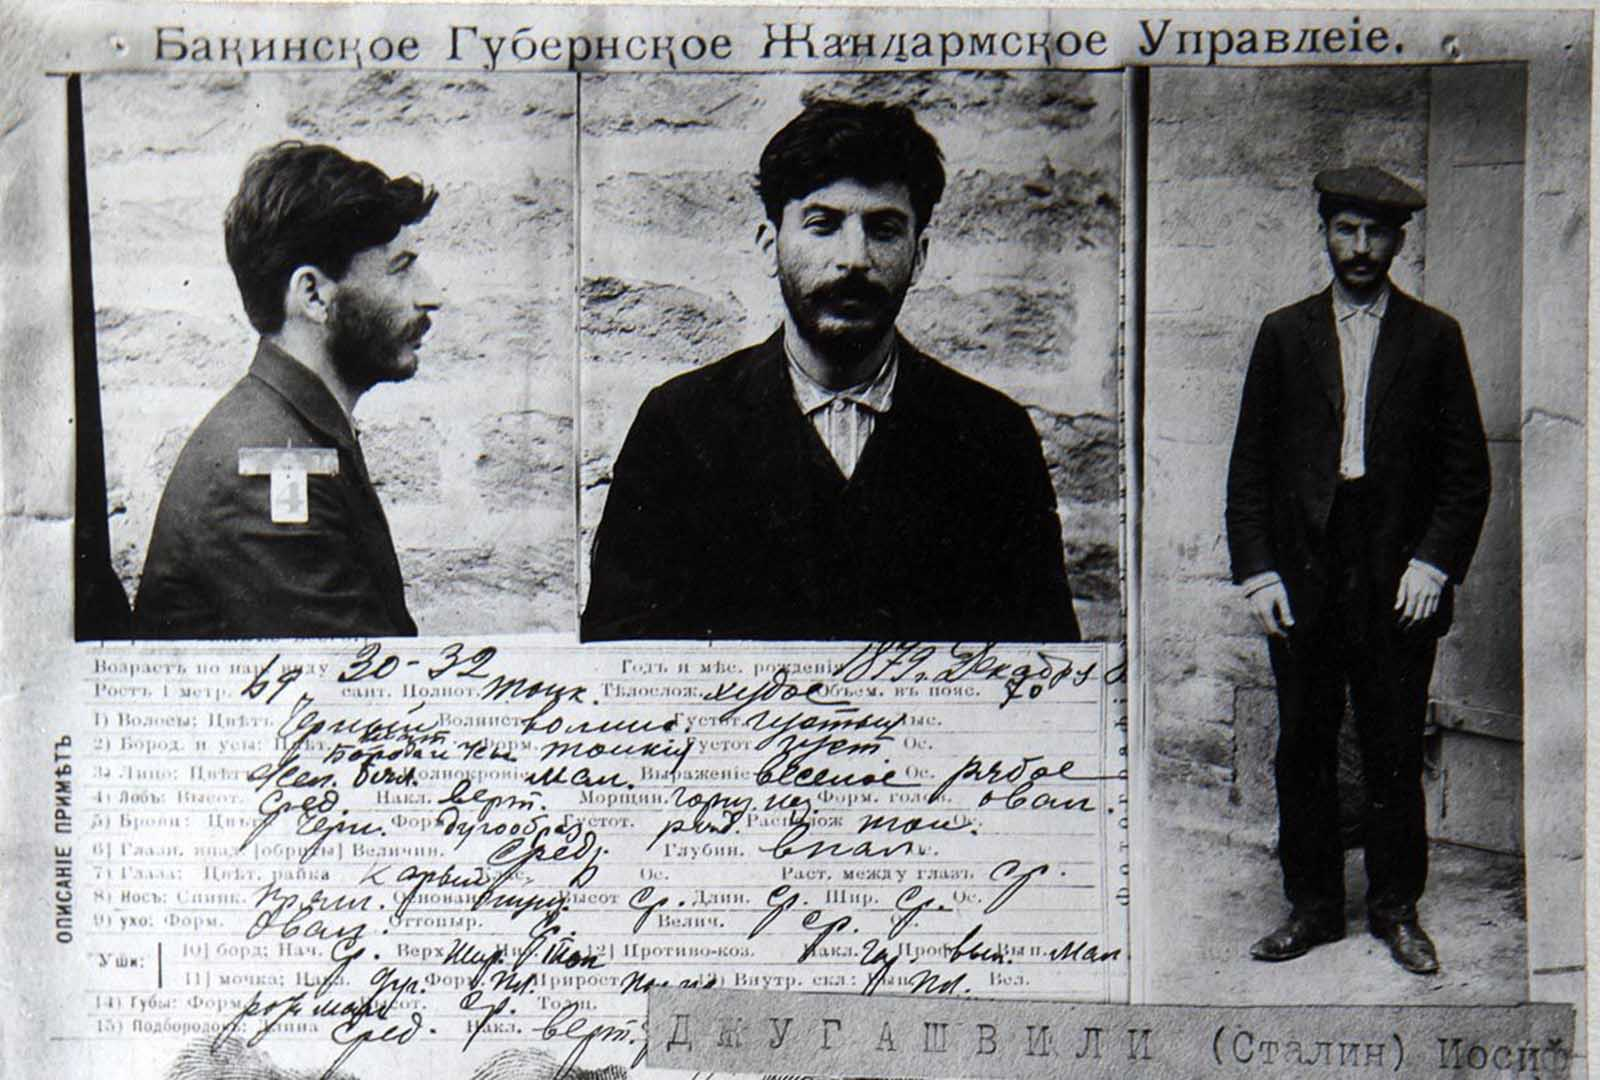 A criminal file on Stalin following his arrest in Baku, Azerbaijan. 1910.